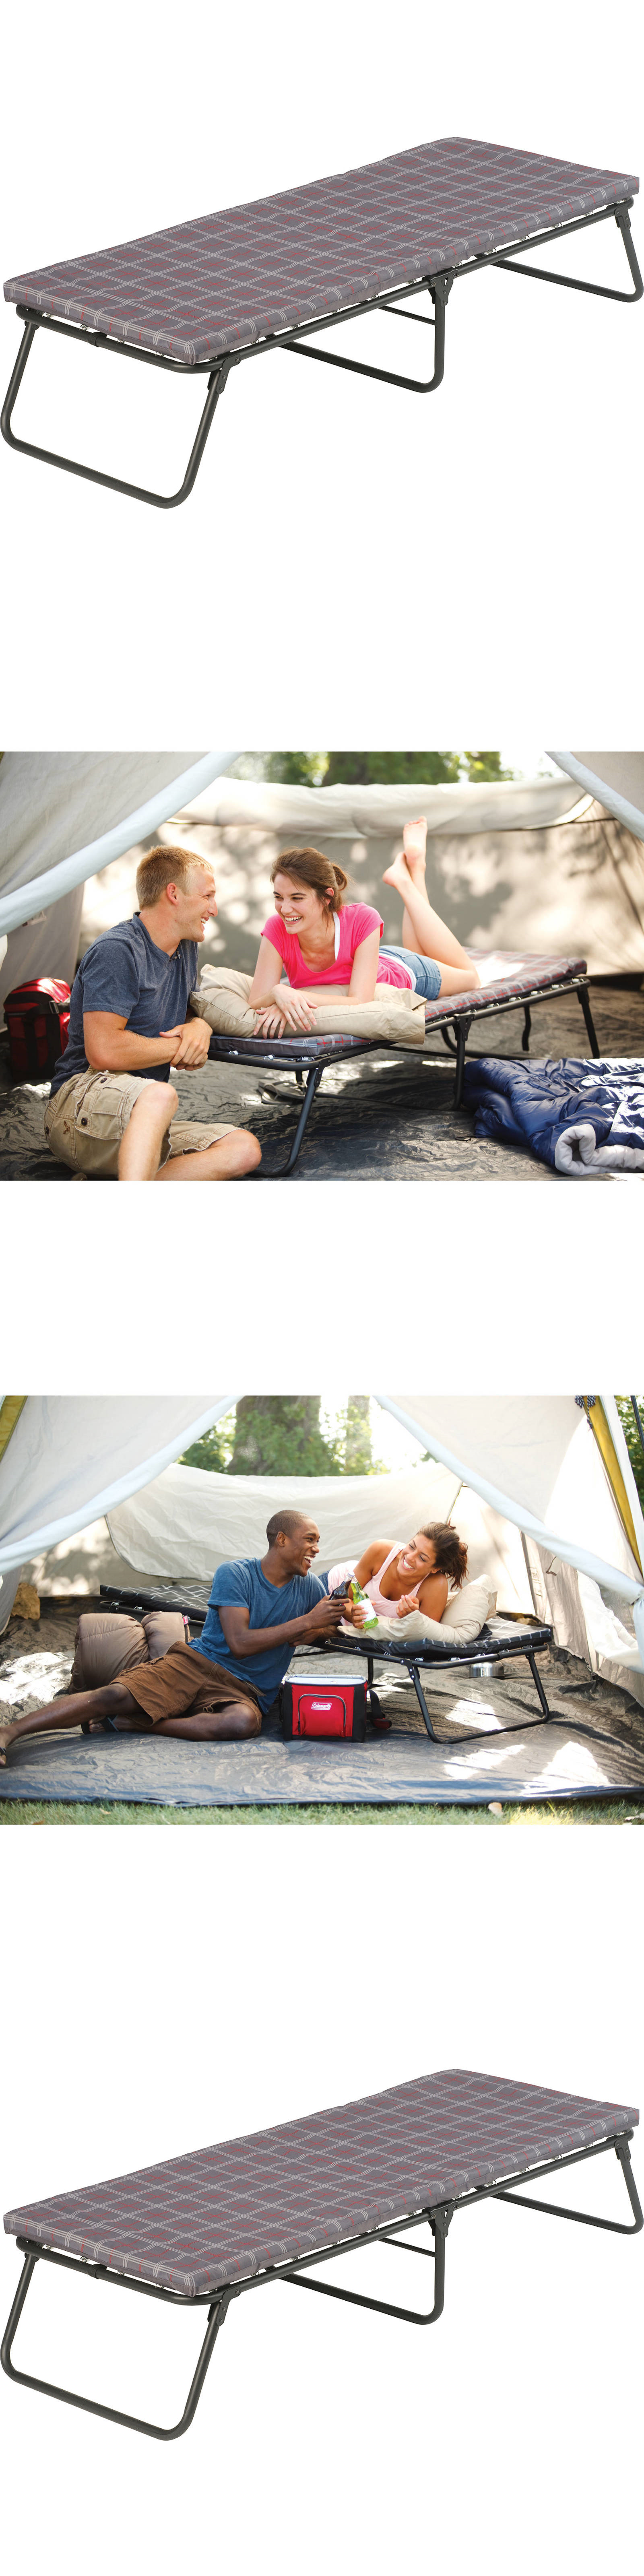 cots 87099 coleman comfortsmart folding camping cot portable bed